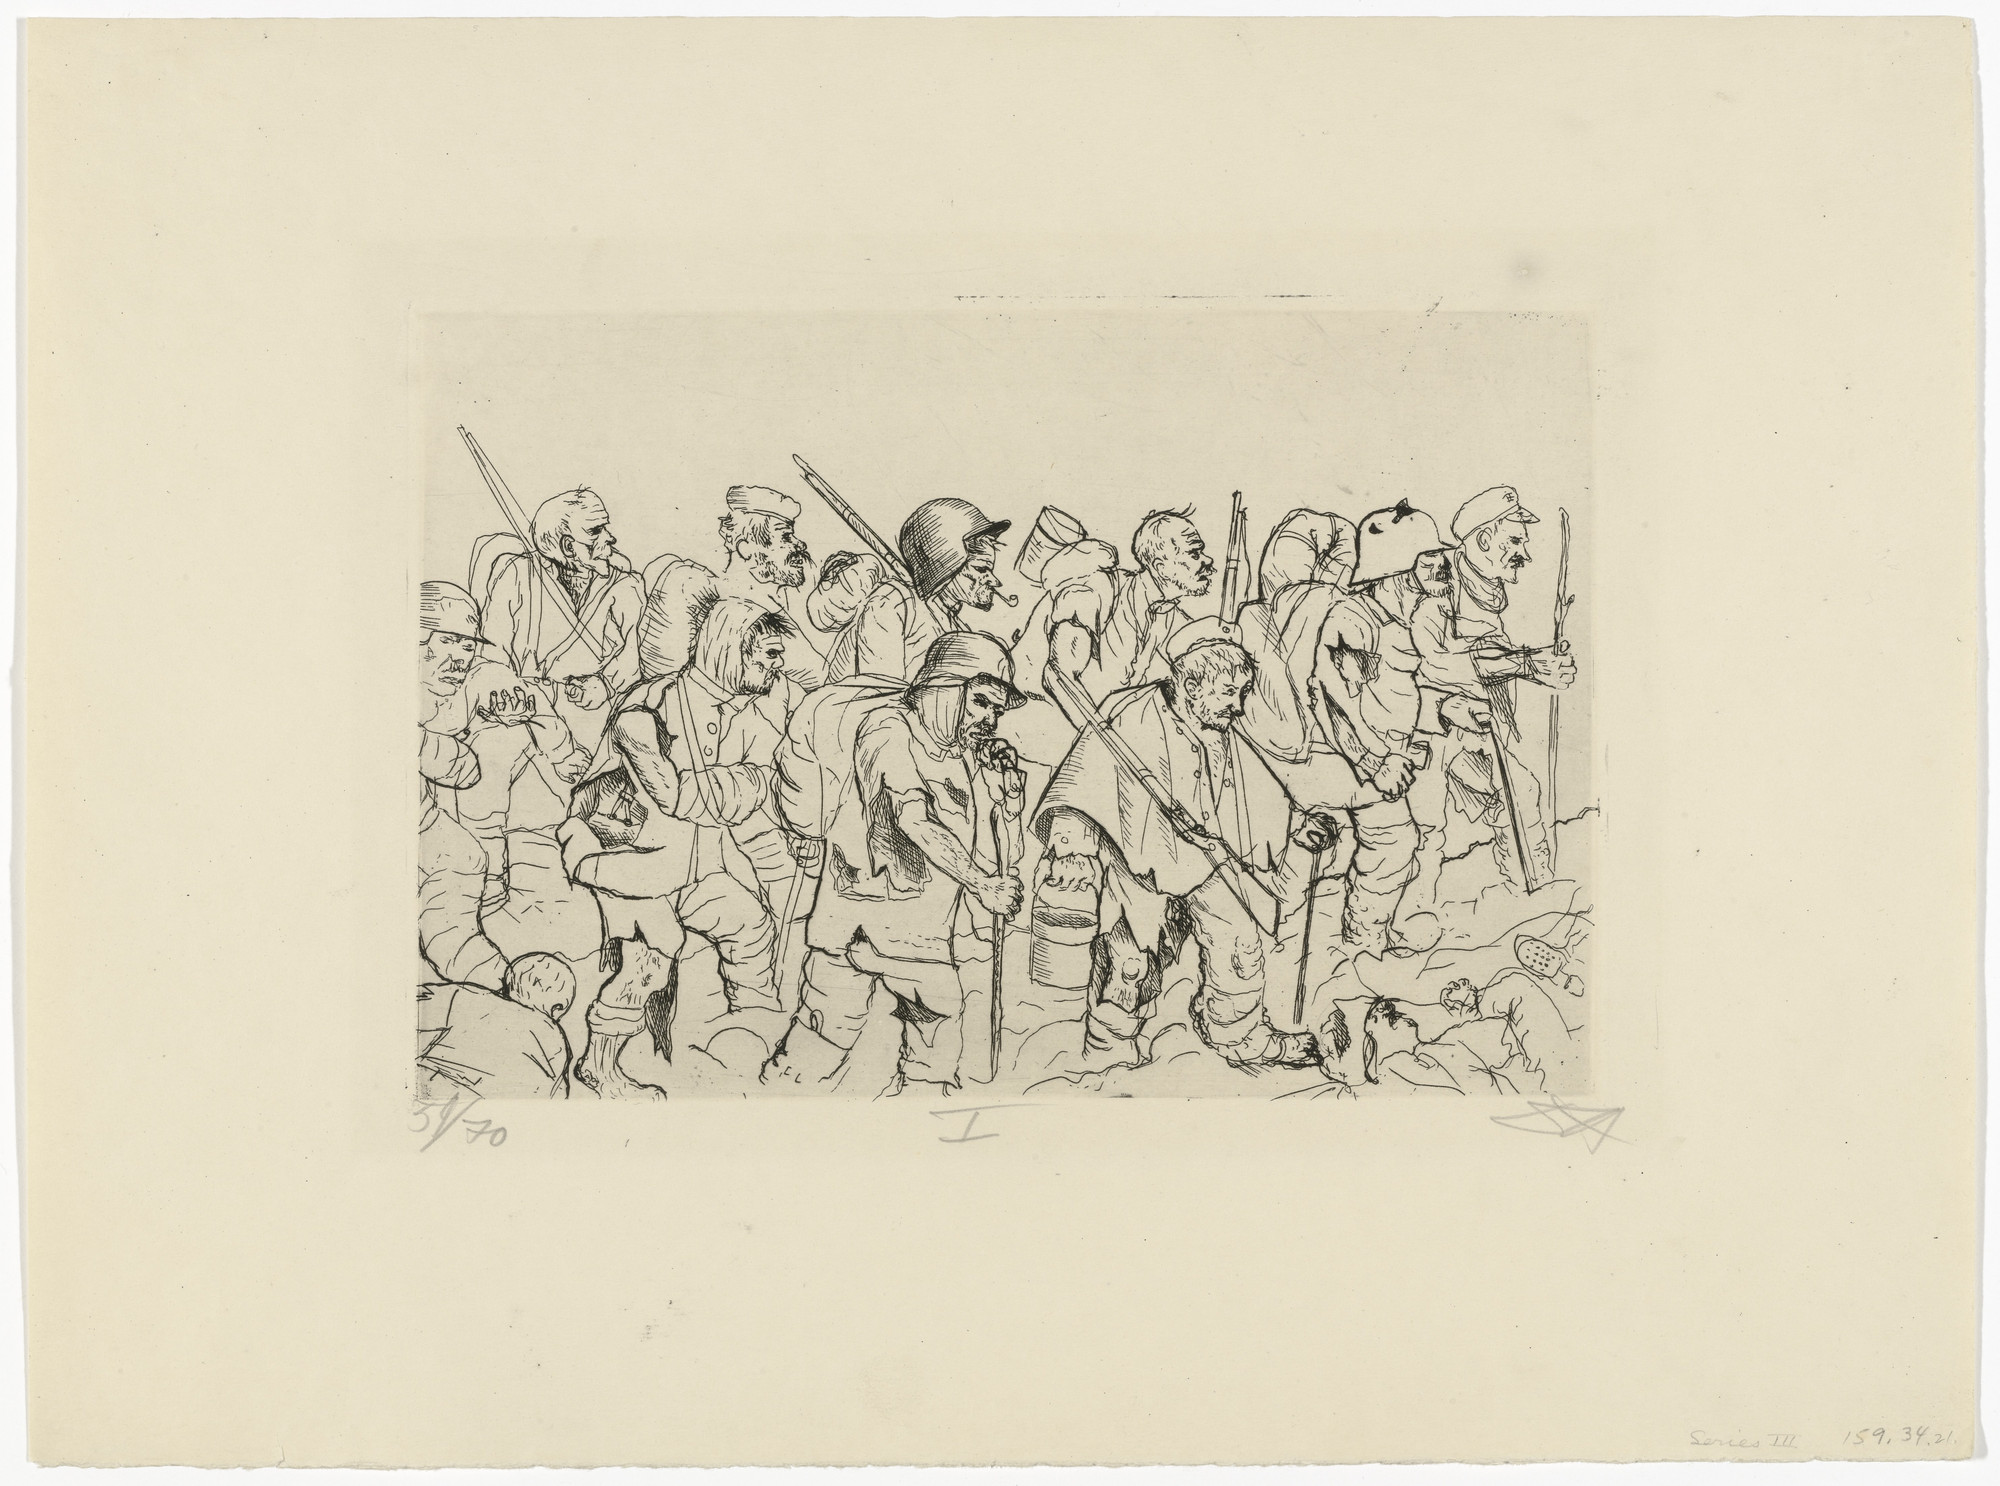 Otto Dix. Battle-Weary Troops Retreat (Battle of the Somme) (Abgekämpfte Truppe geht zurück [Sommeschlacht]) from The War (Der Krieg). 1924